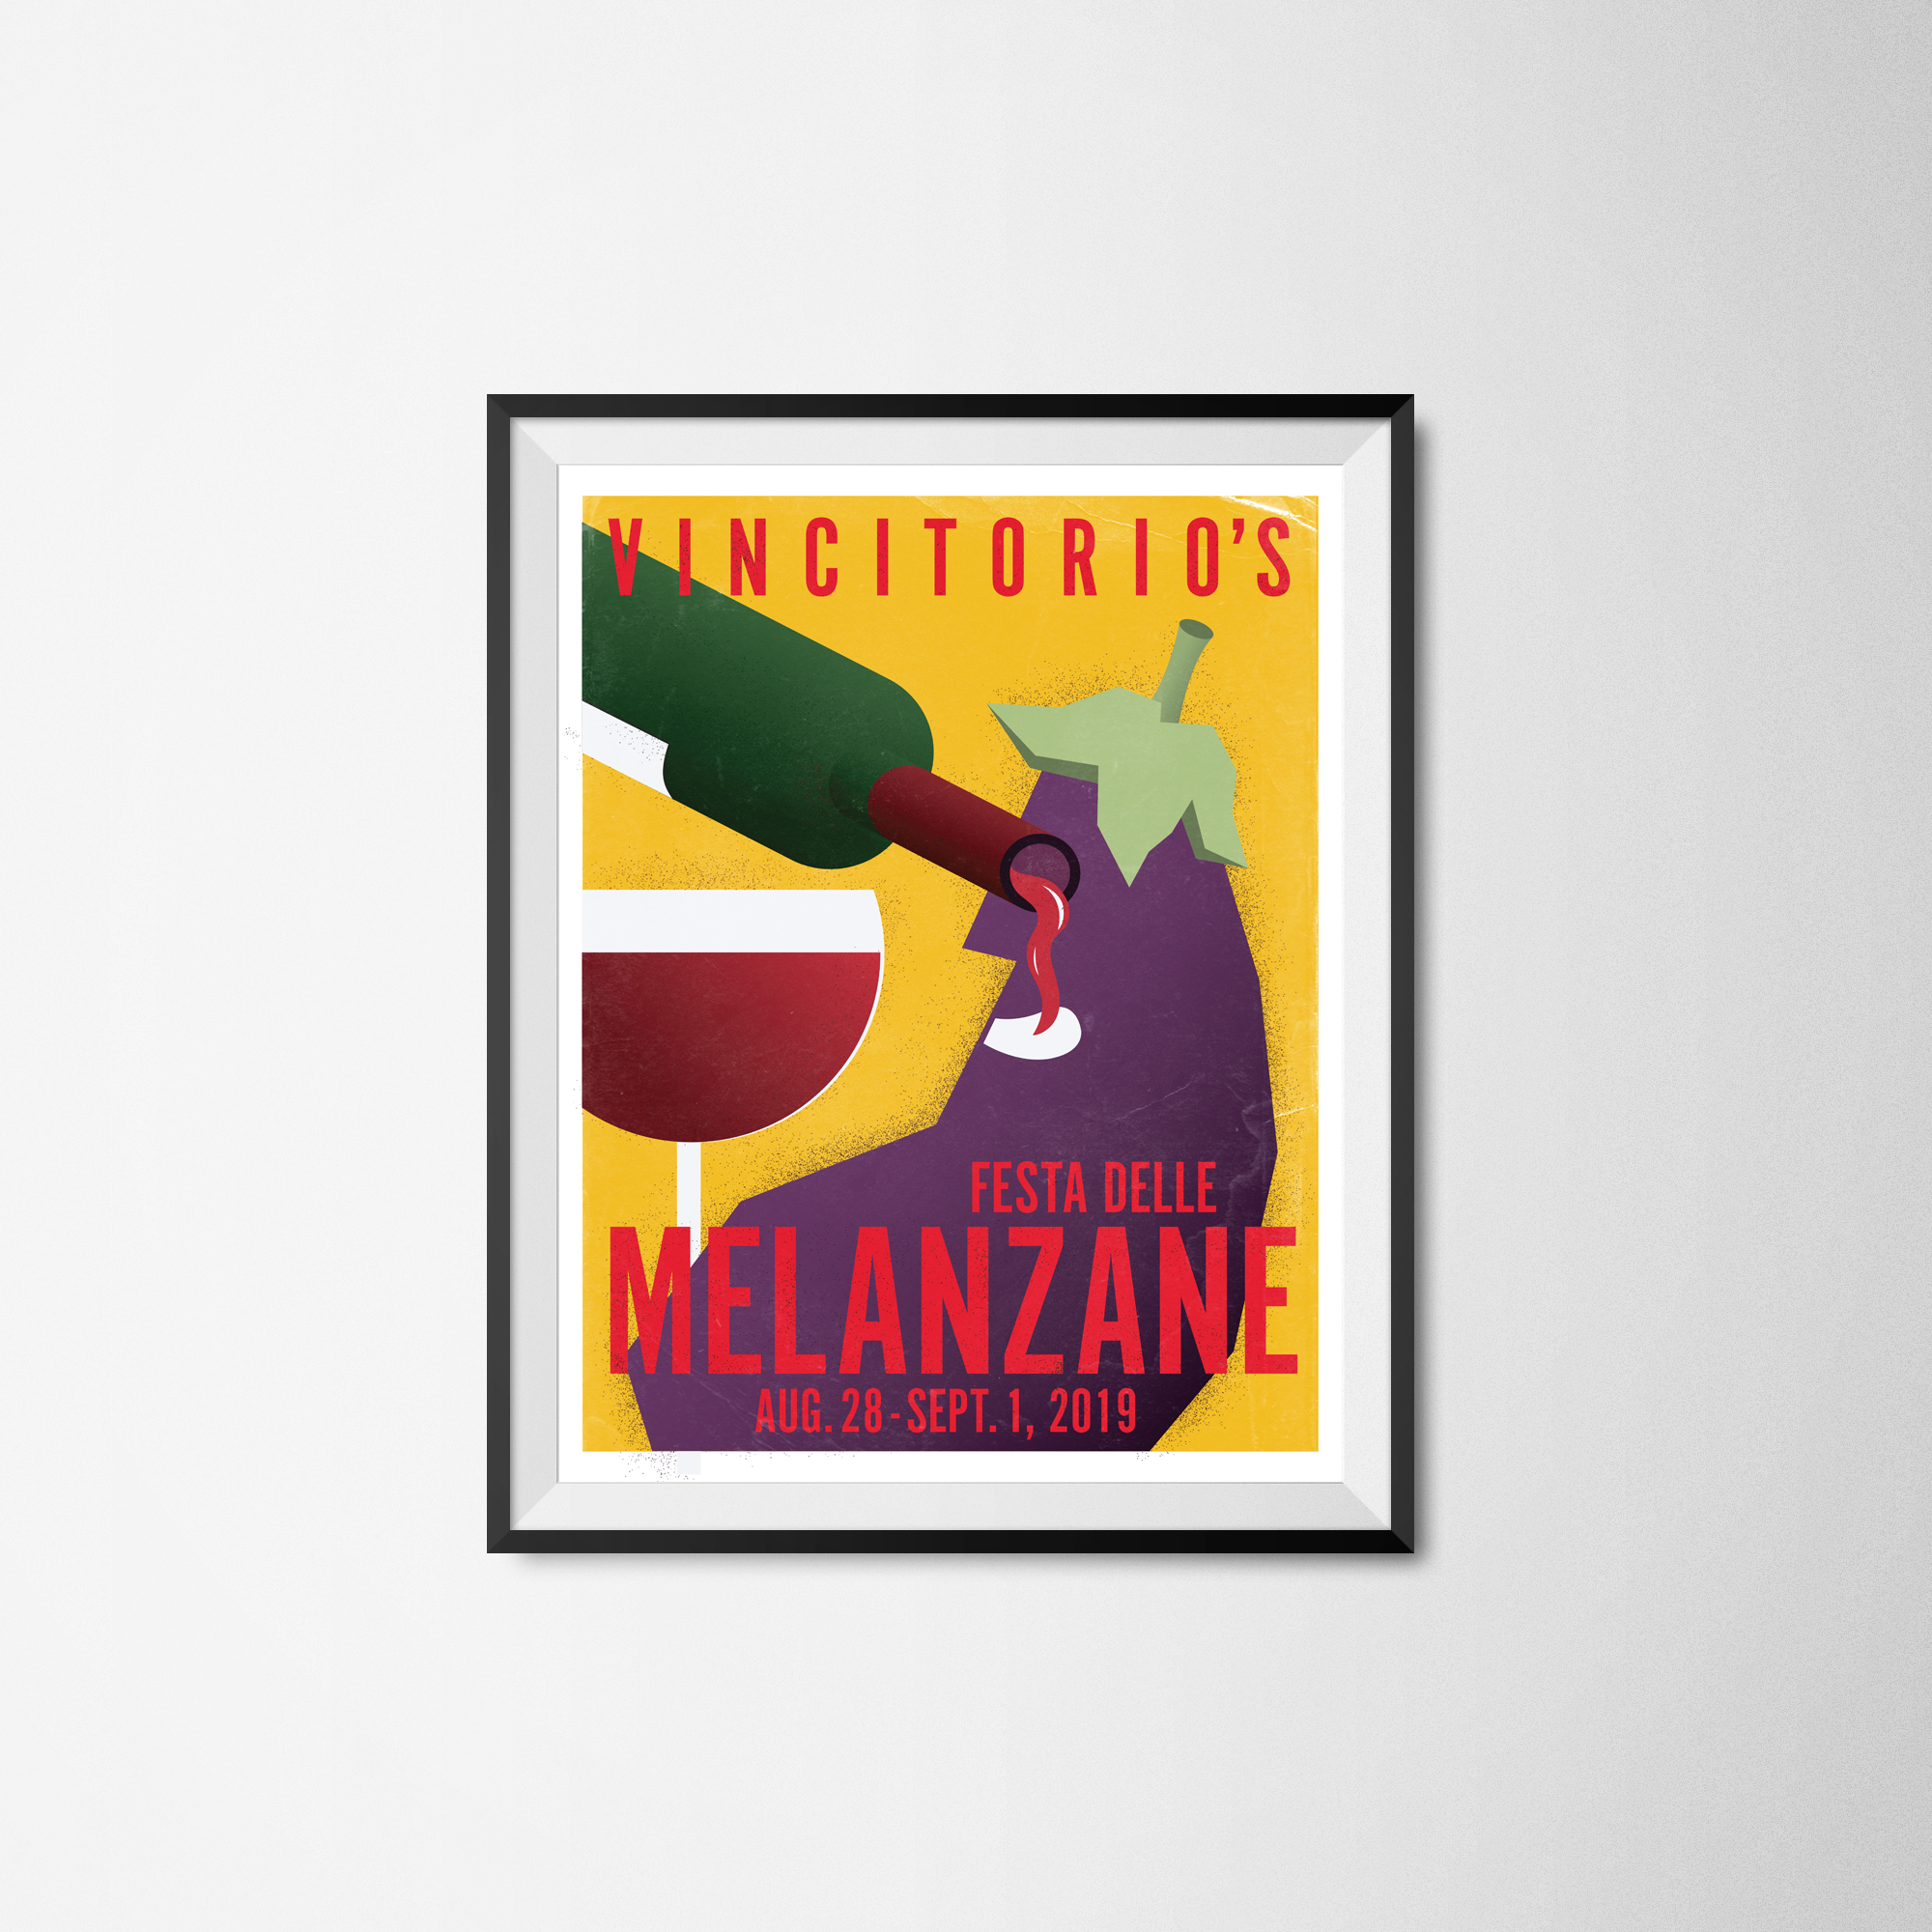 Vincitorios_poster_Frame_2019_August.png